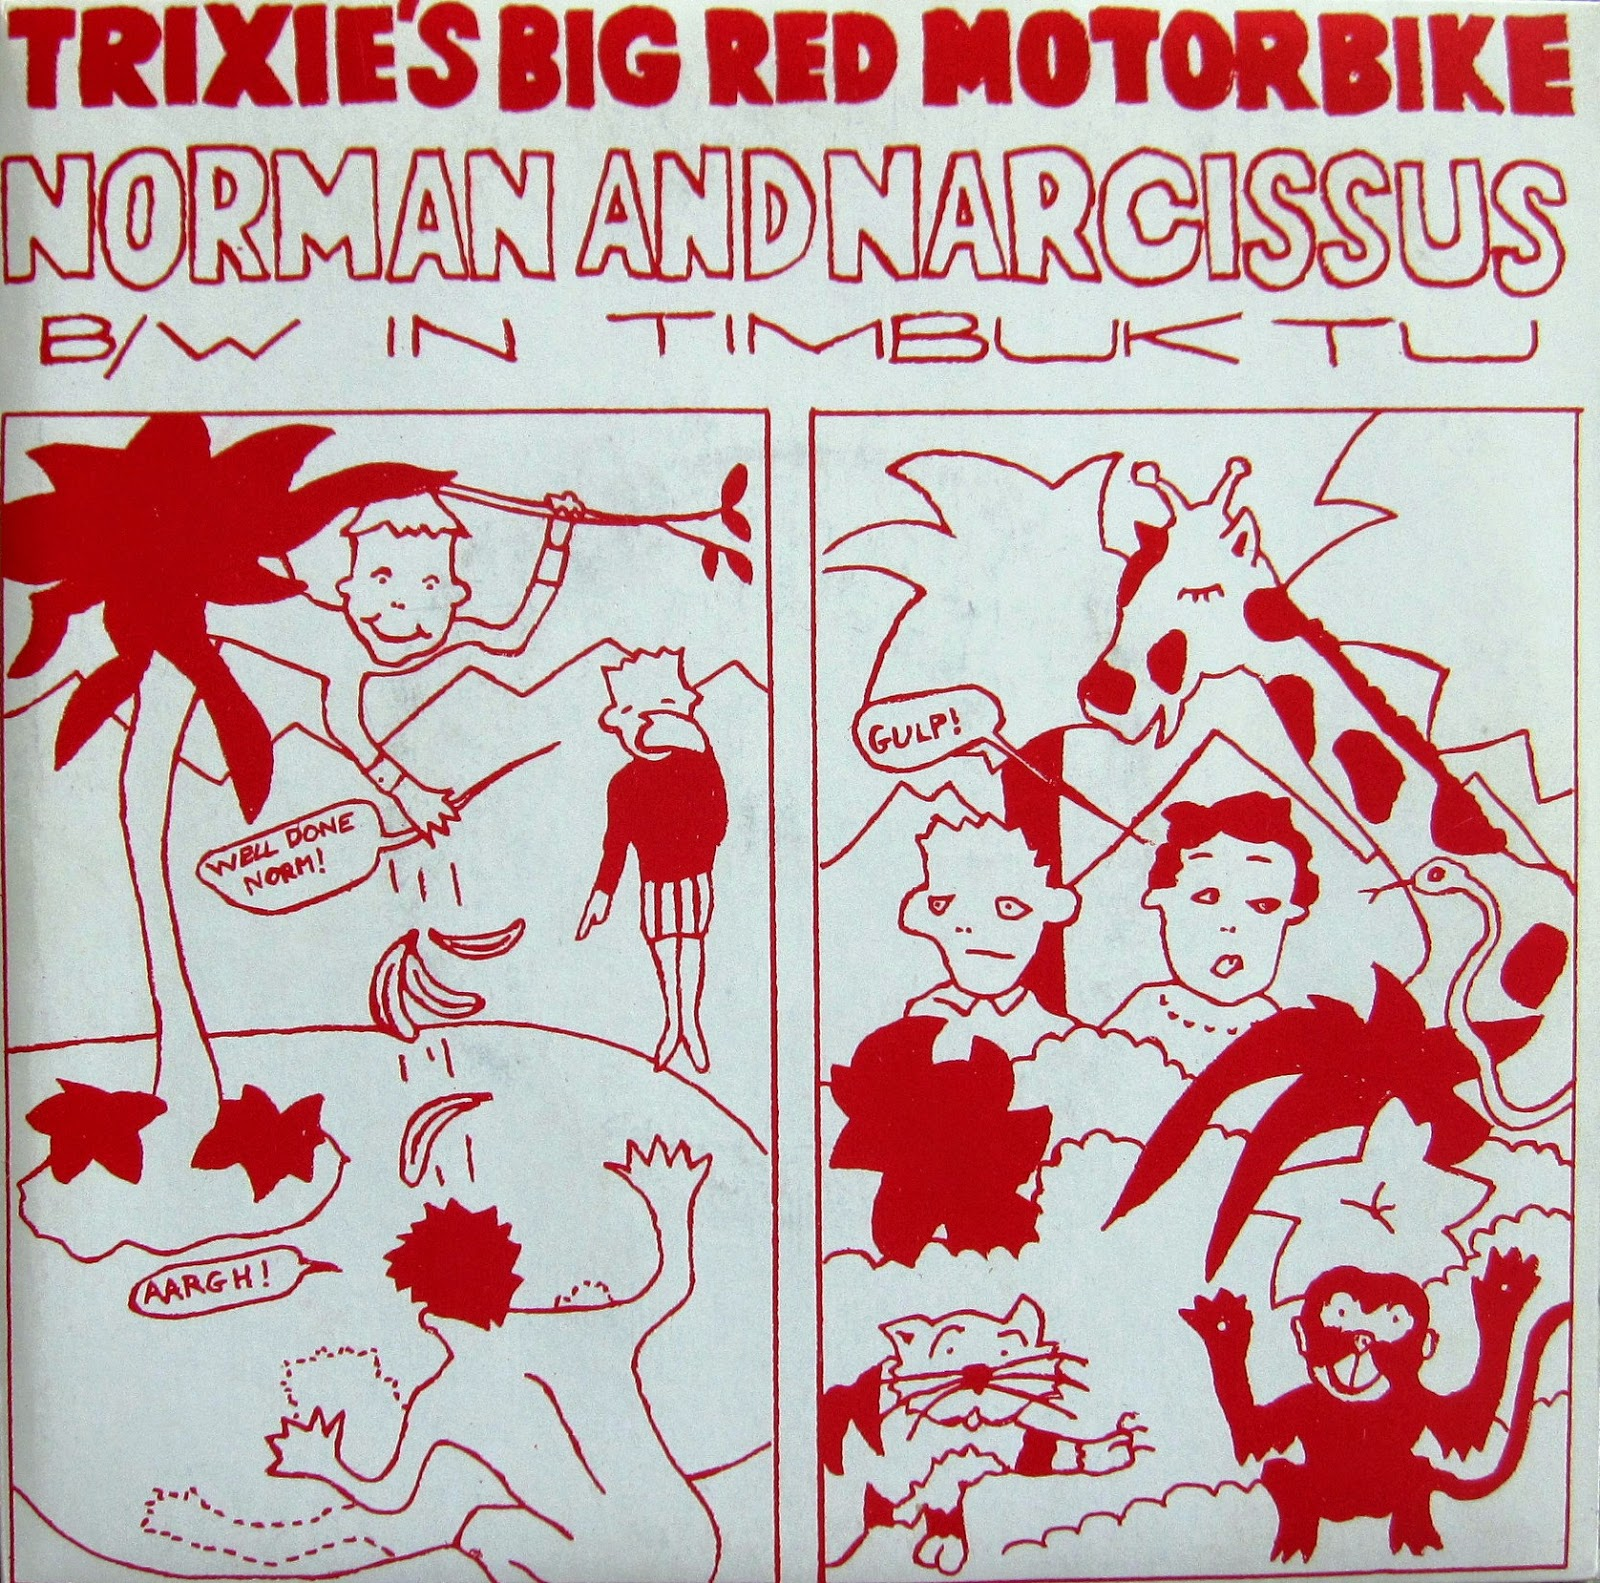 Trixie's Big Red Motorbike - Hold Me